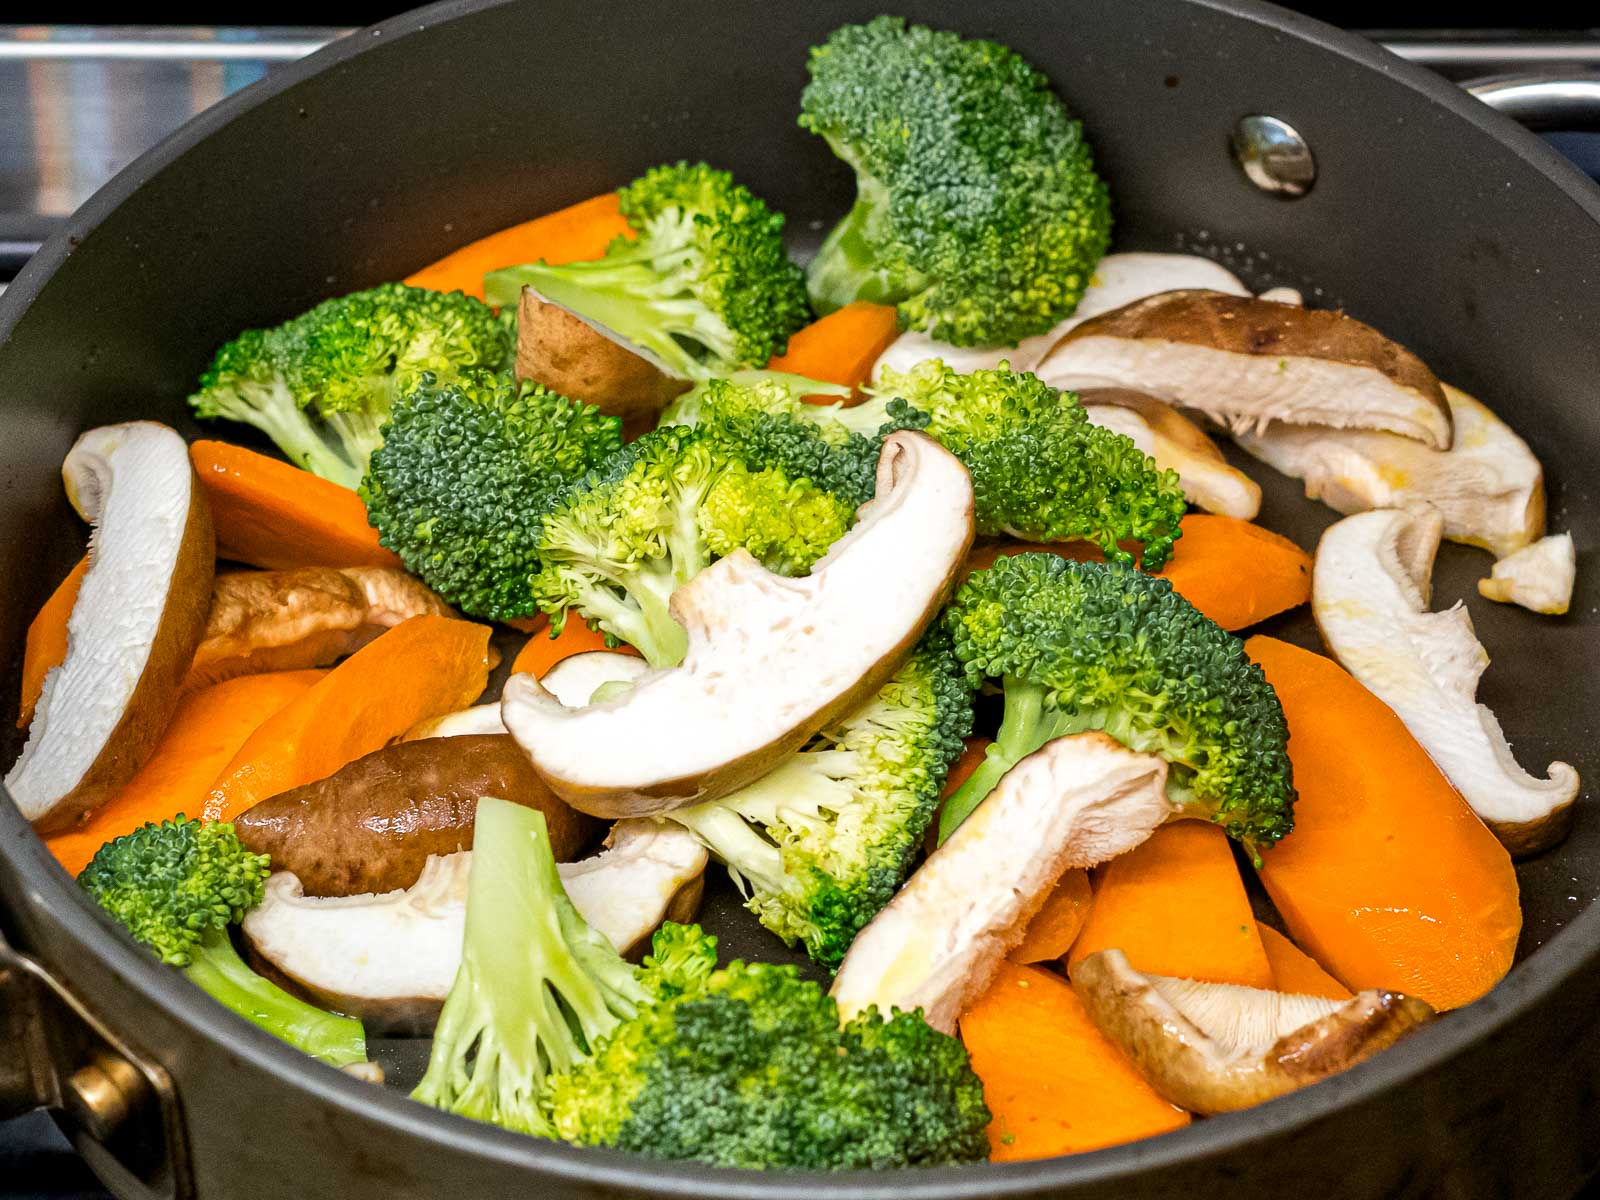 mushroom, broccoli, and carrots stir fried in a pan